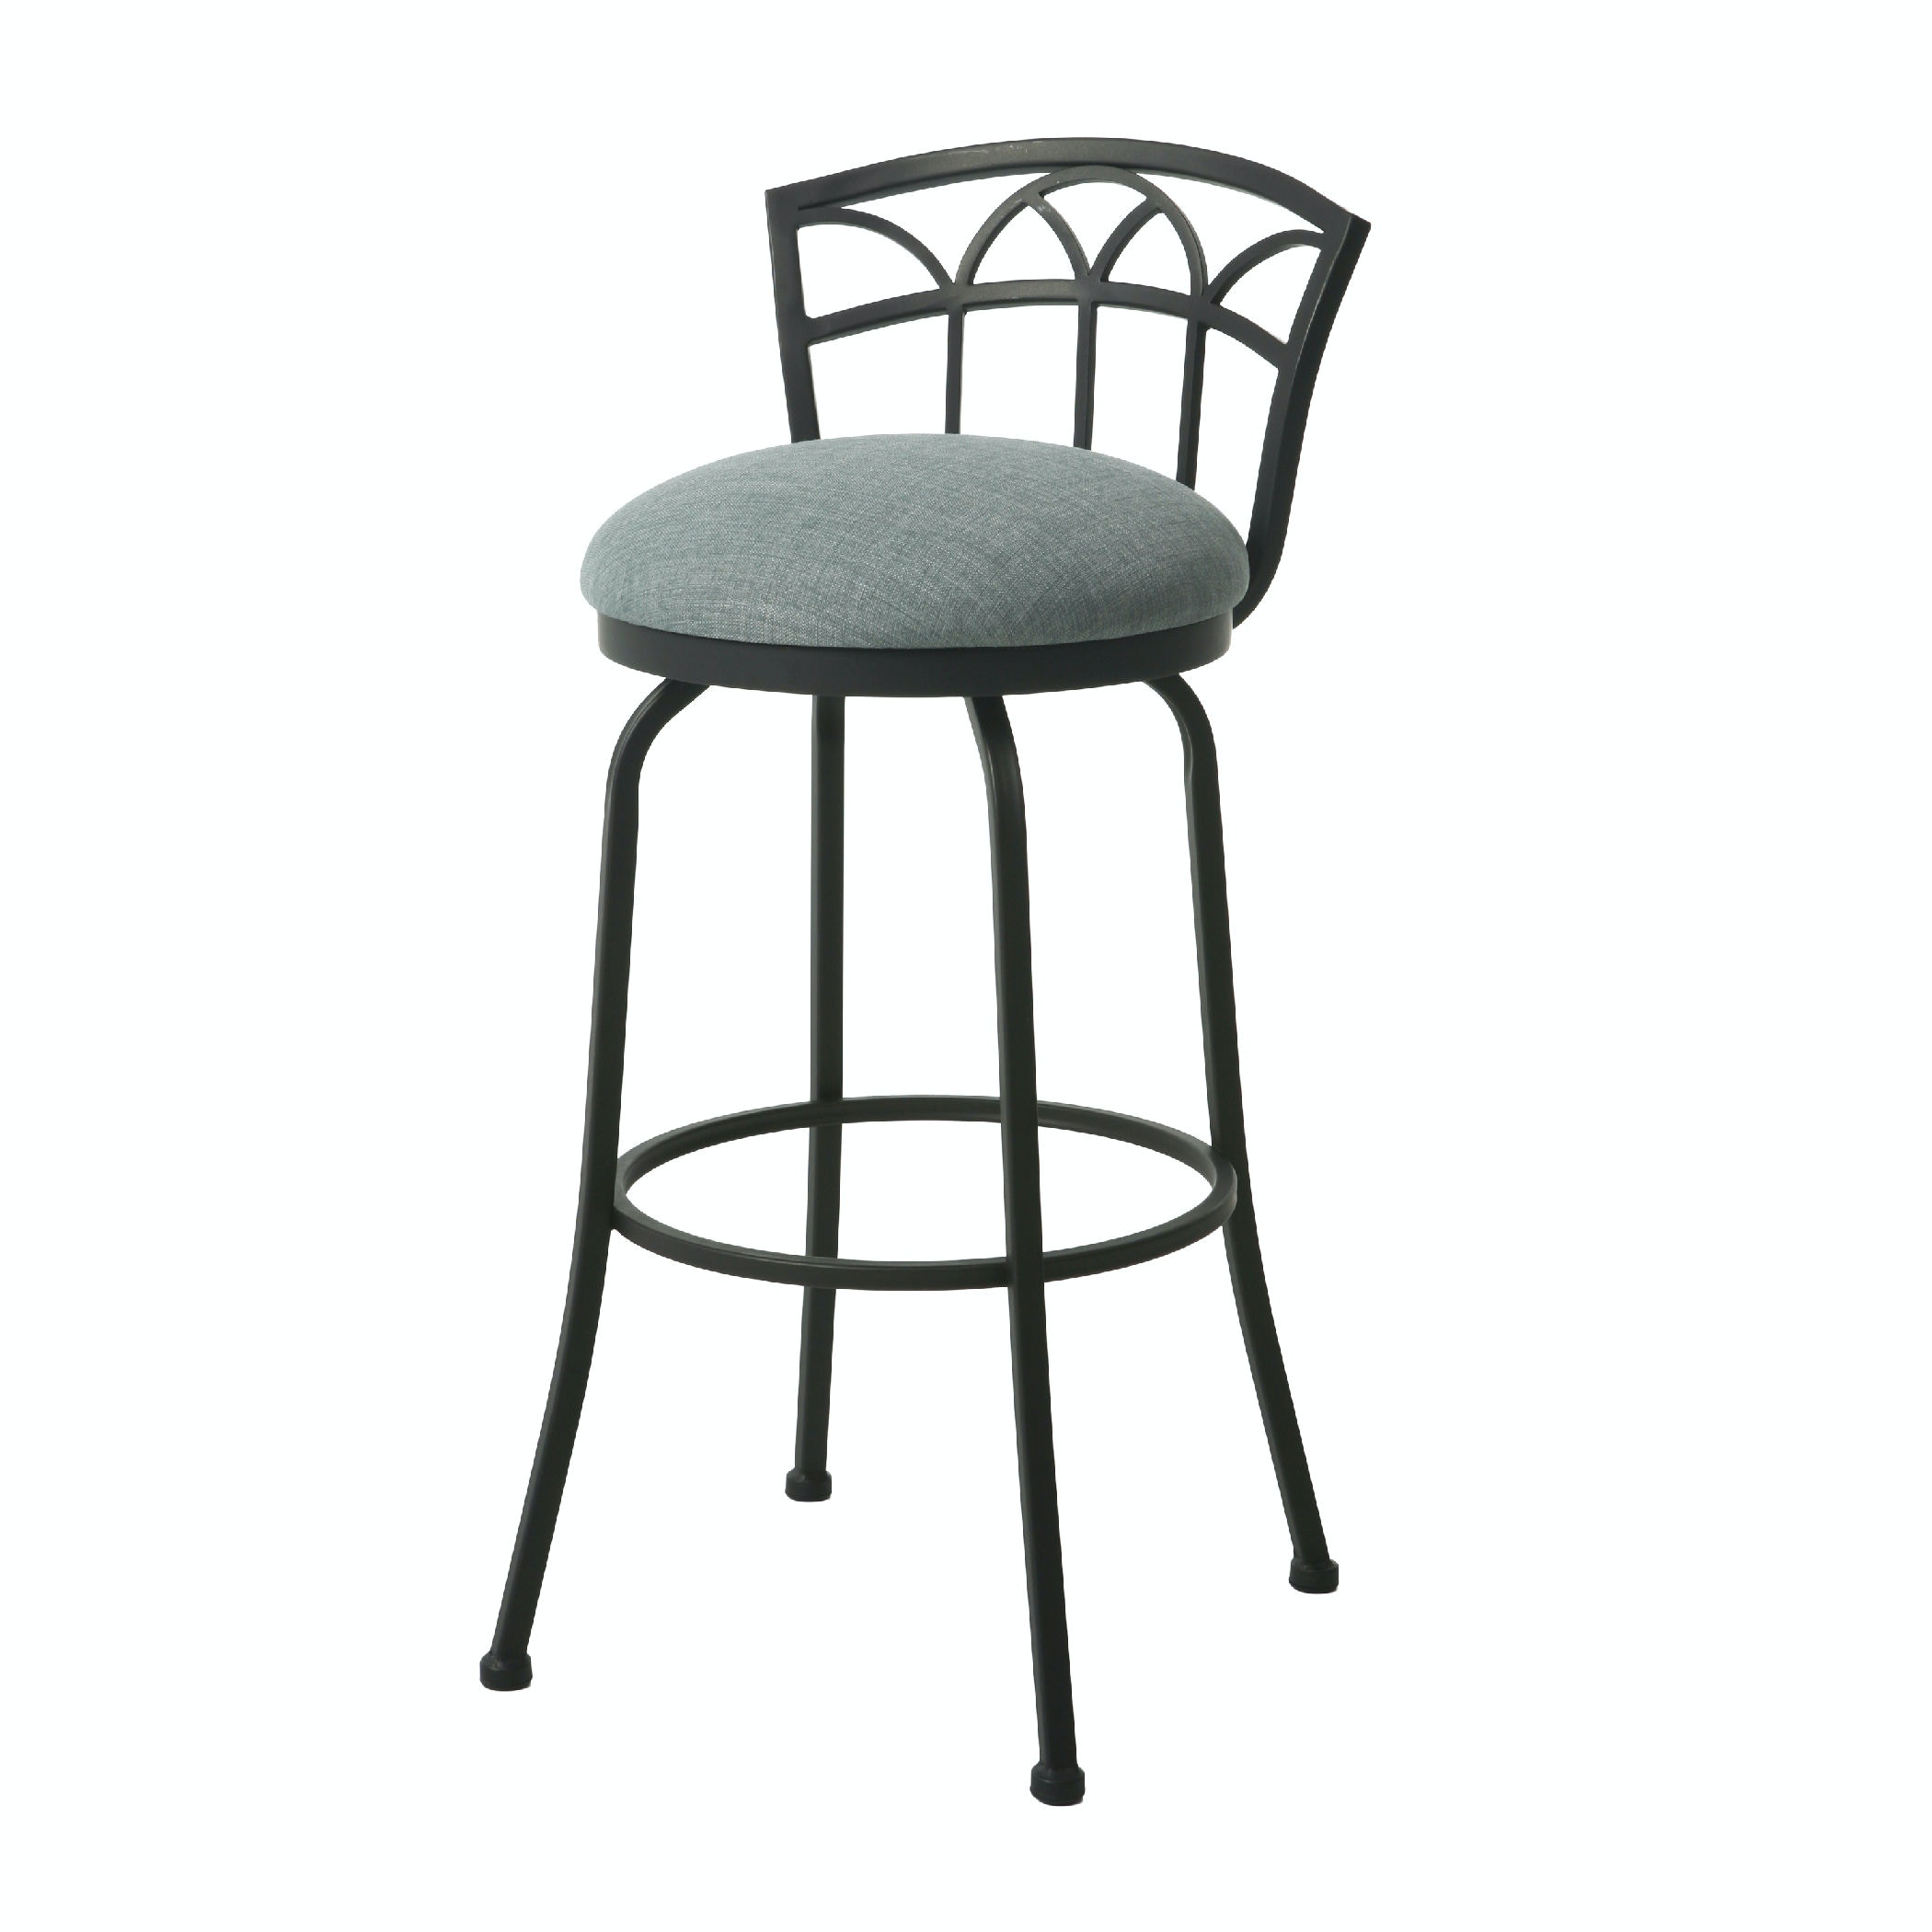 Pastel Furniture Jasmine Swivel Barstool JS 225 30